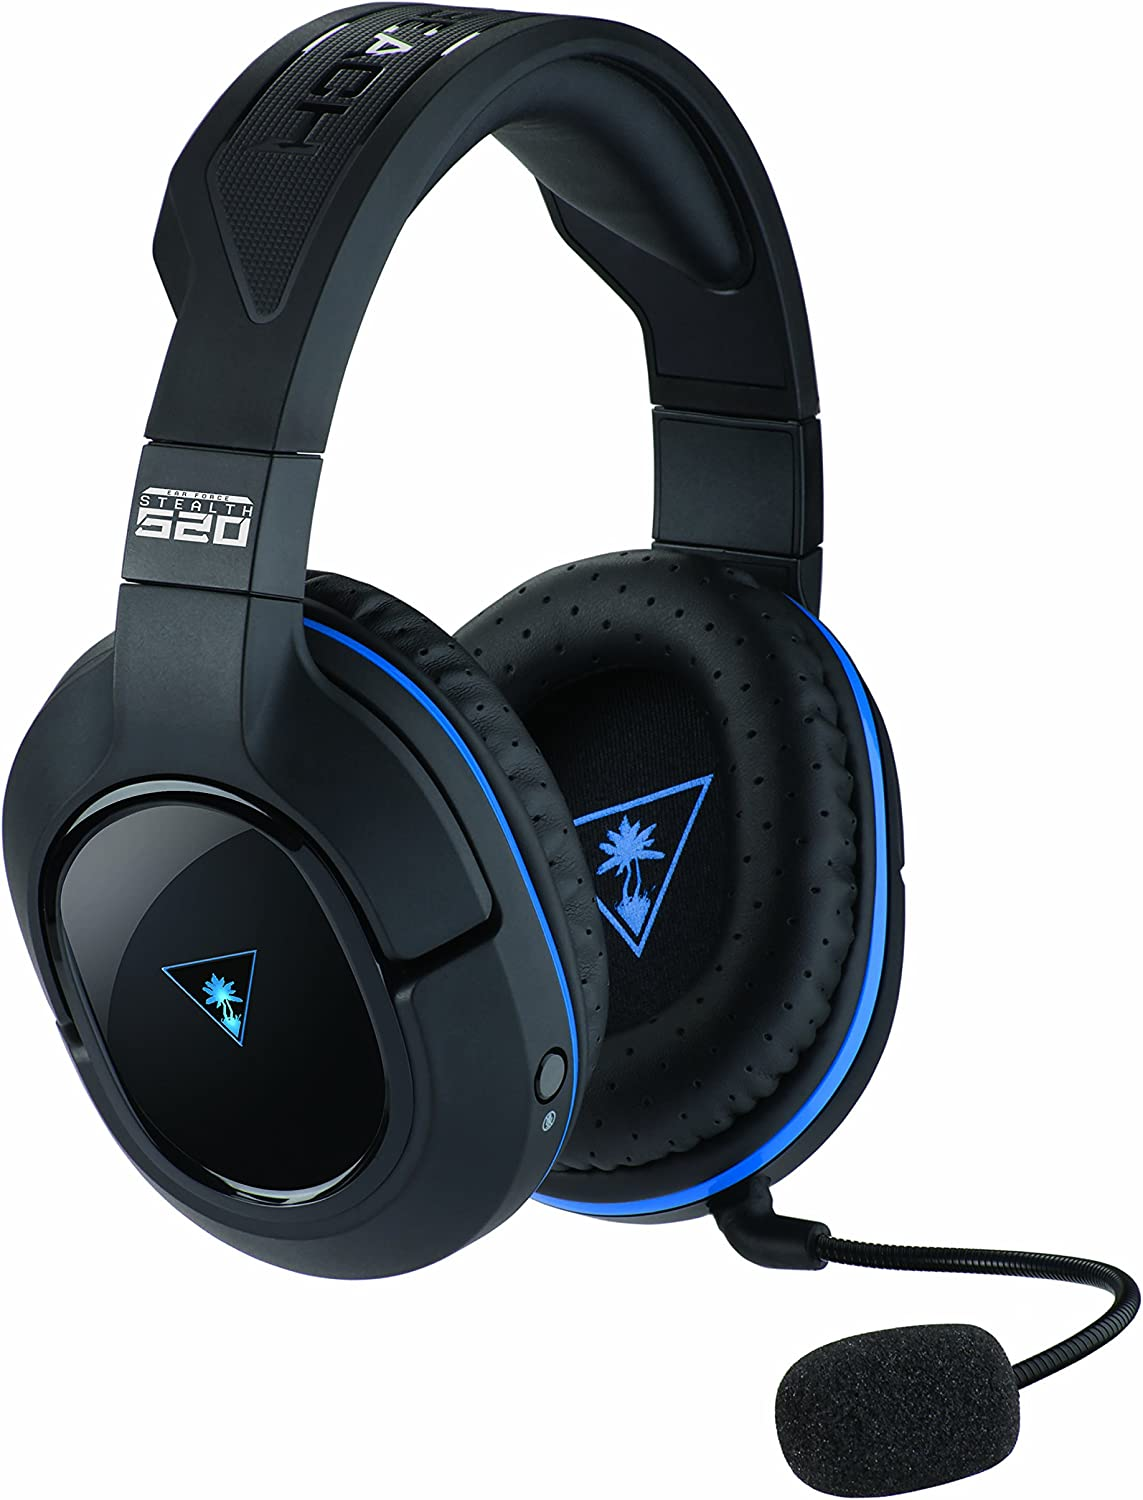 15 Best PS4 Headsets 2019 – Buyer's Guide - Headphones Unboxed